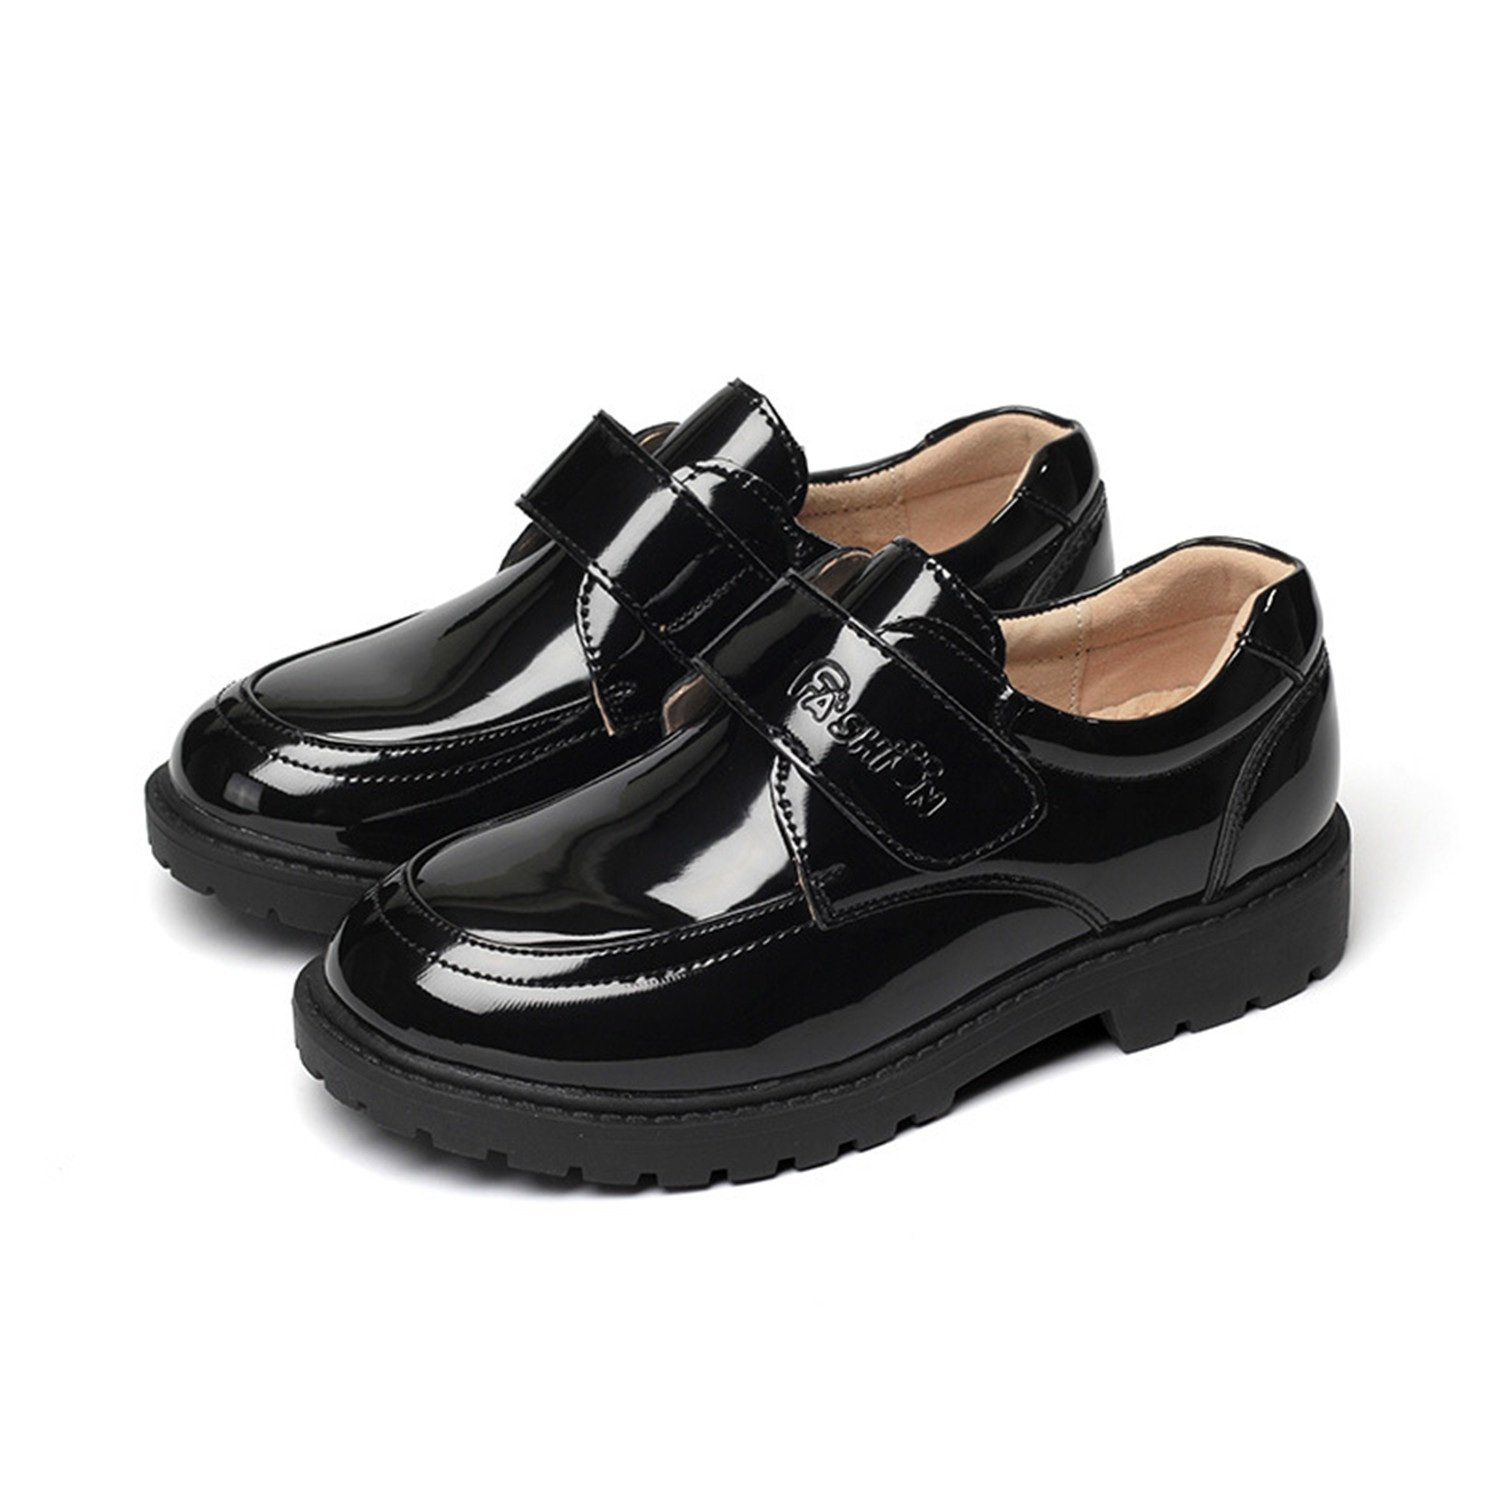 HYF Boys Loafers Kids Shoes Student Performance Flats Slip On Style Single Fastener Band Driving Shoes (Color : Black, Size : 37)